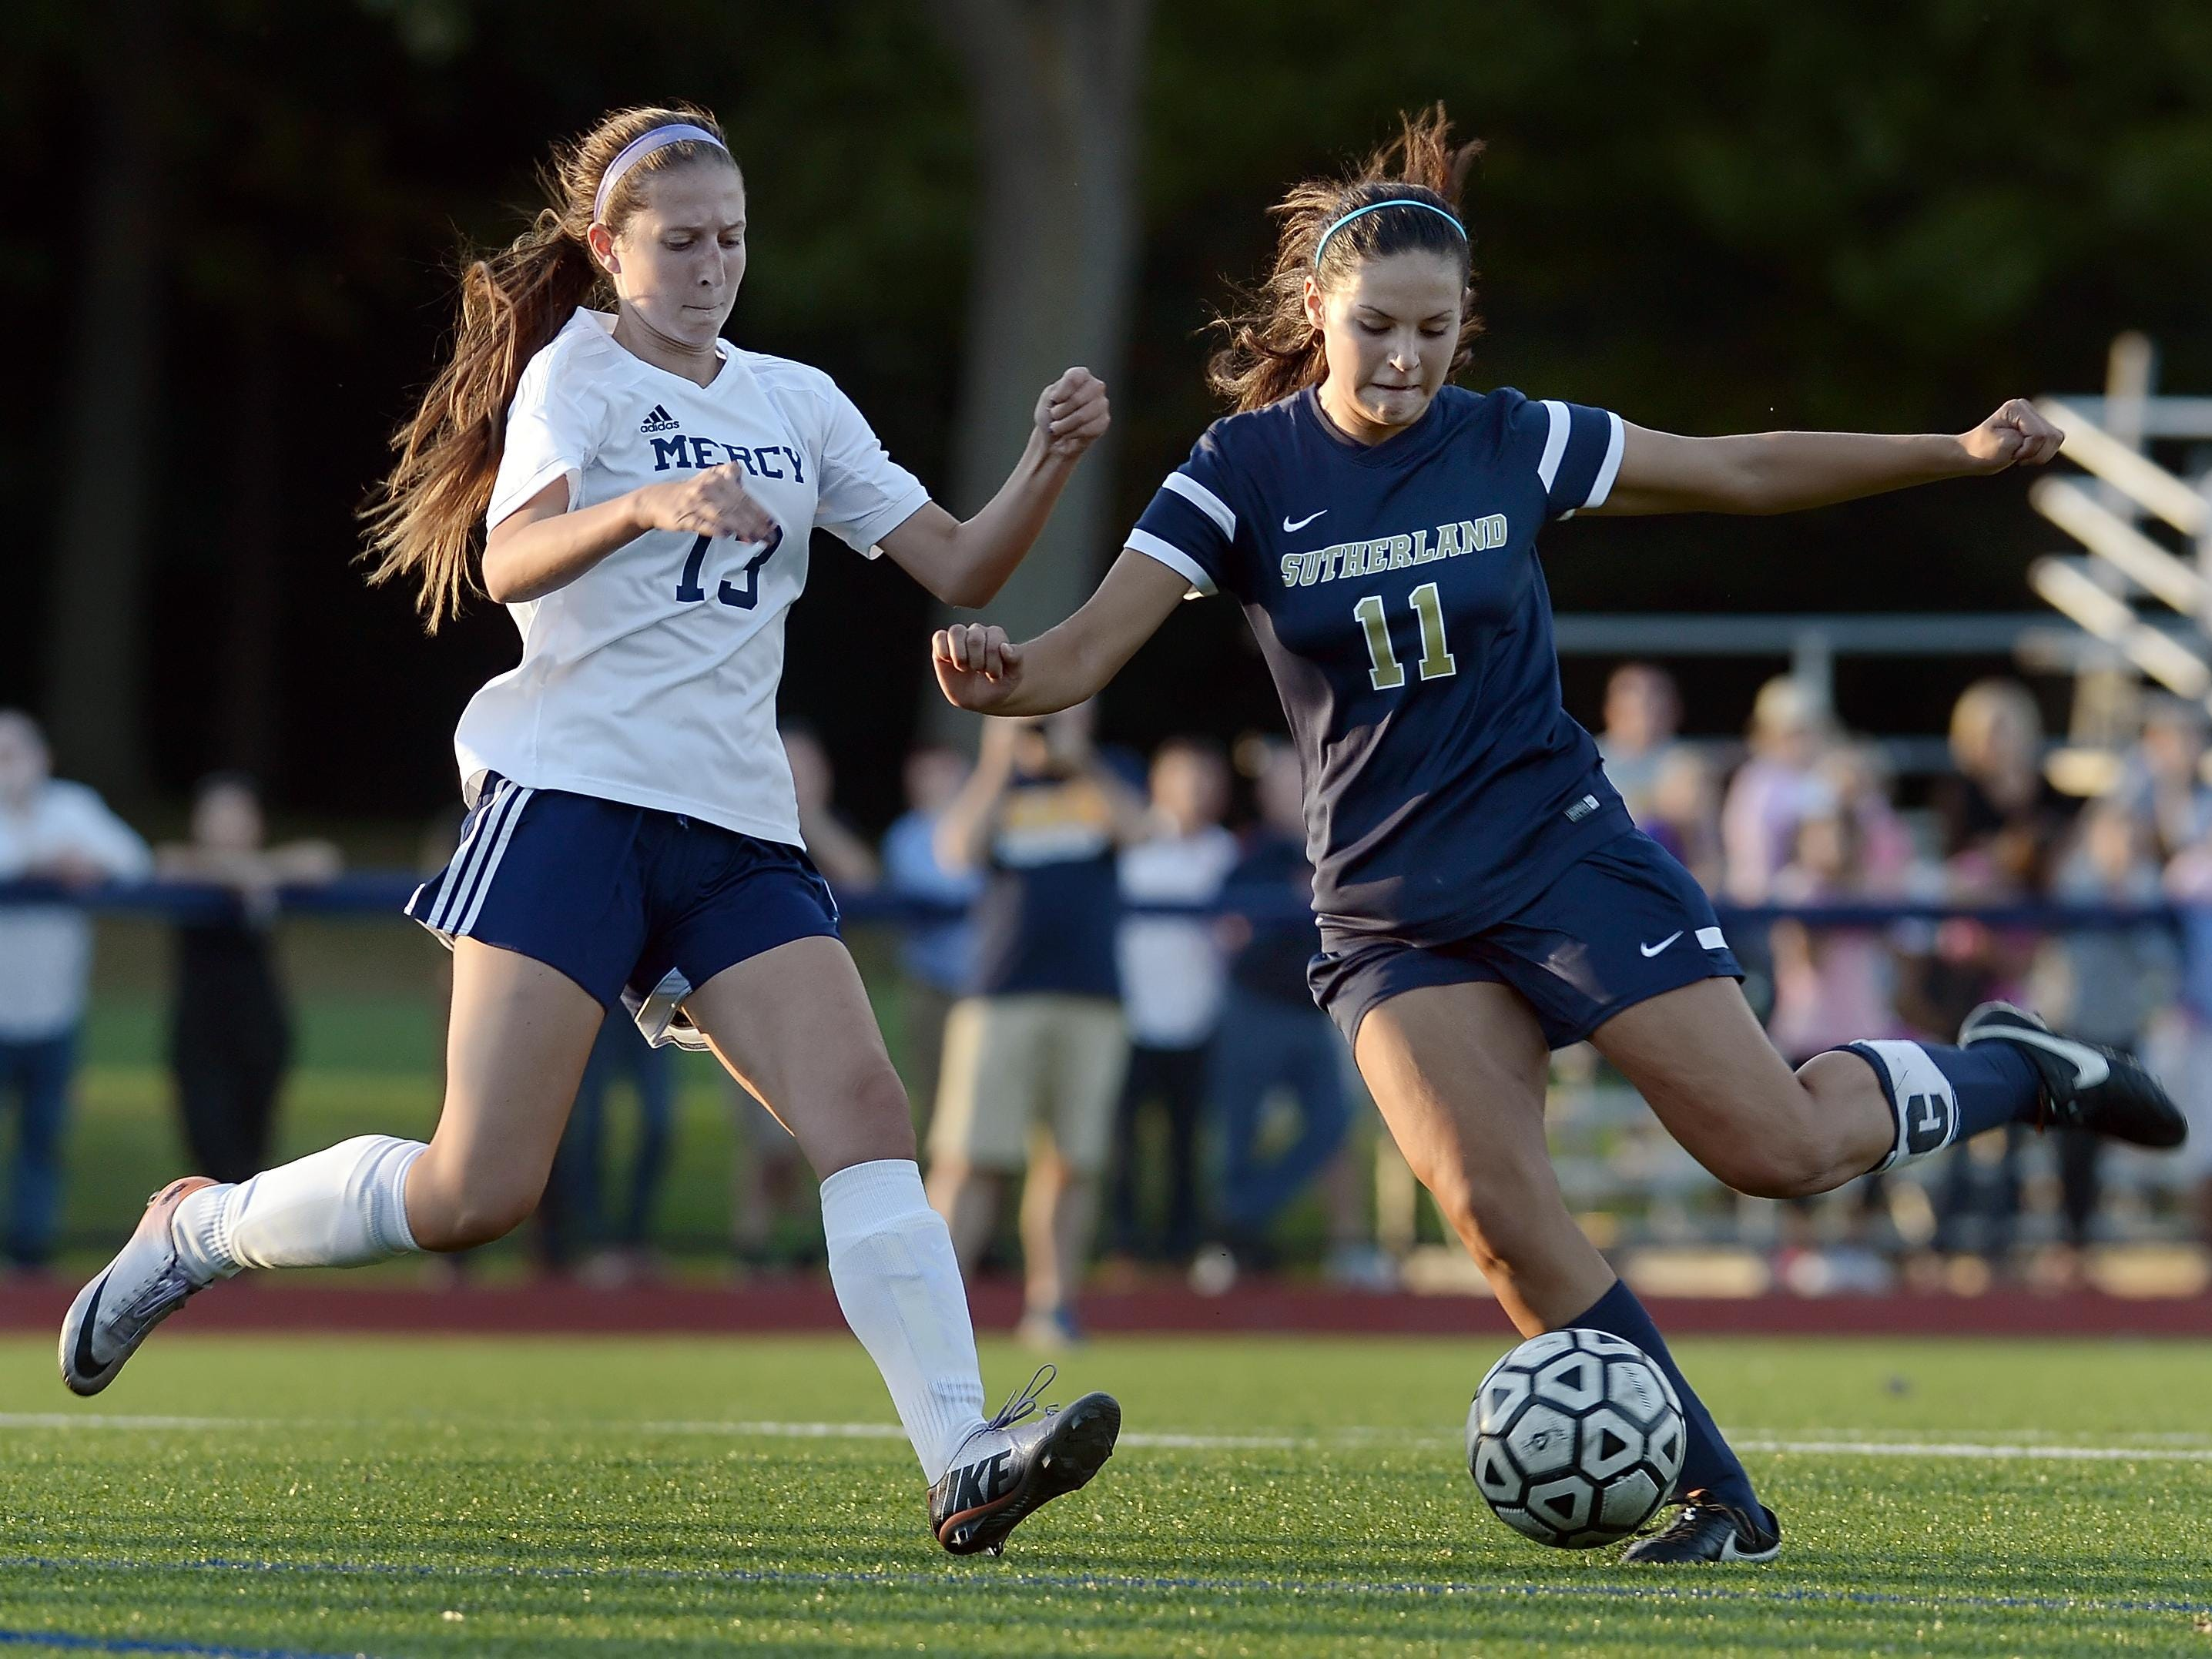 Pittsford Sutherland's Vicki Beatham, right, winds up a shot on goal while defended by Mercy's Kameron Baxter.